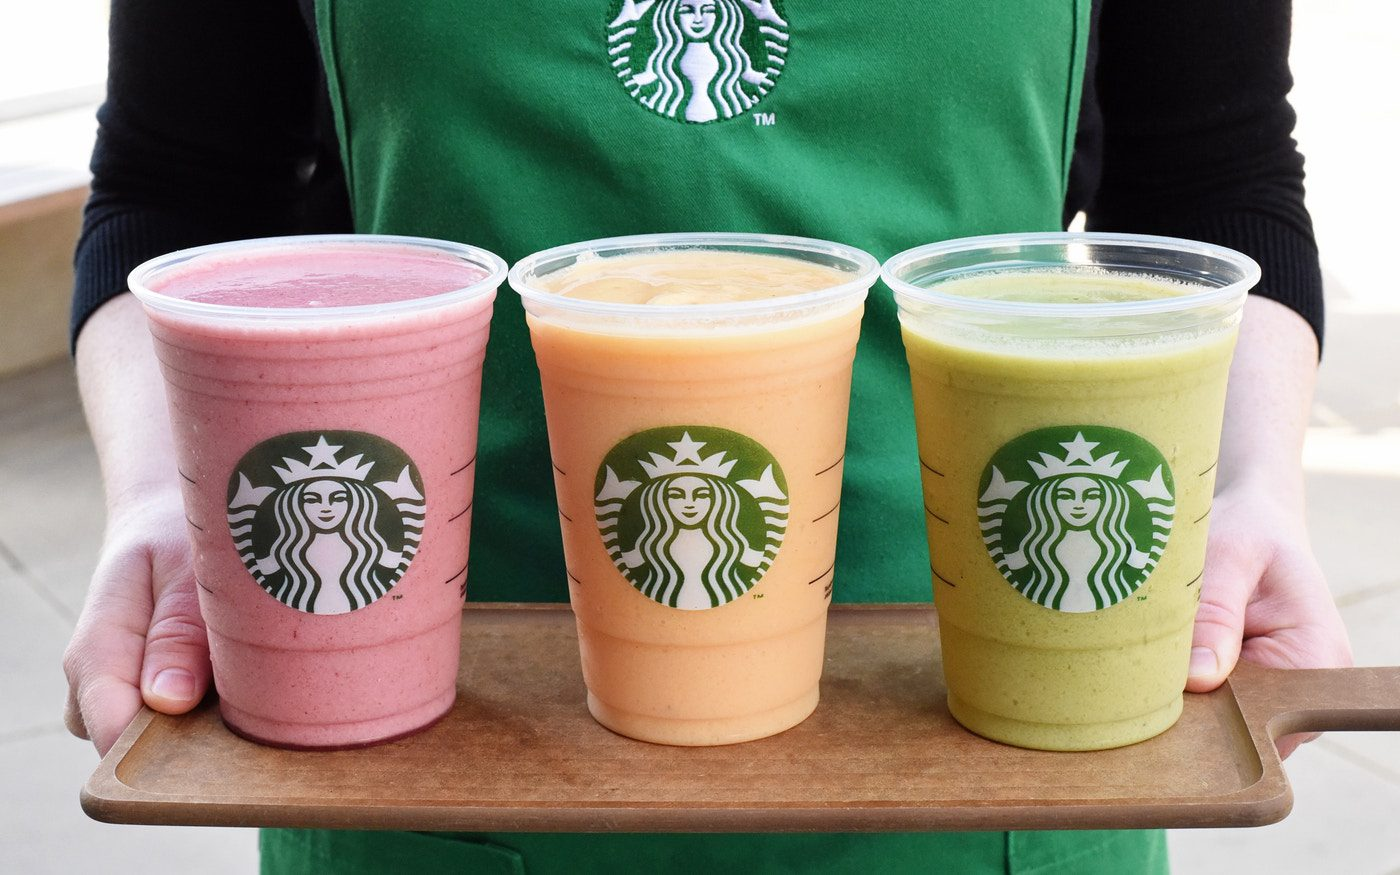 More About Starbucks